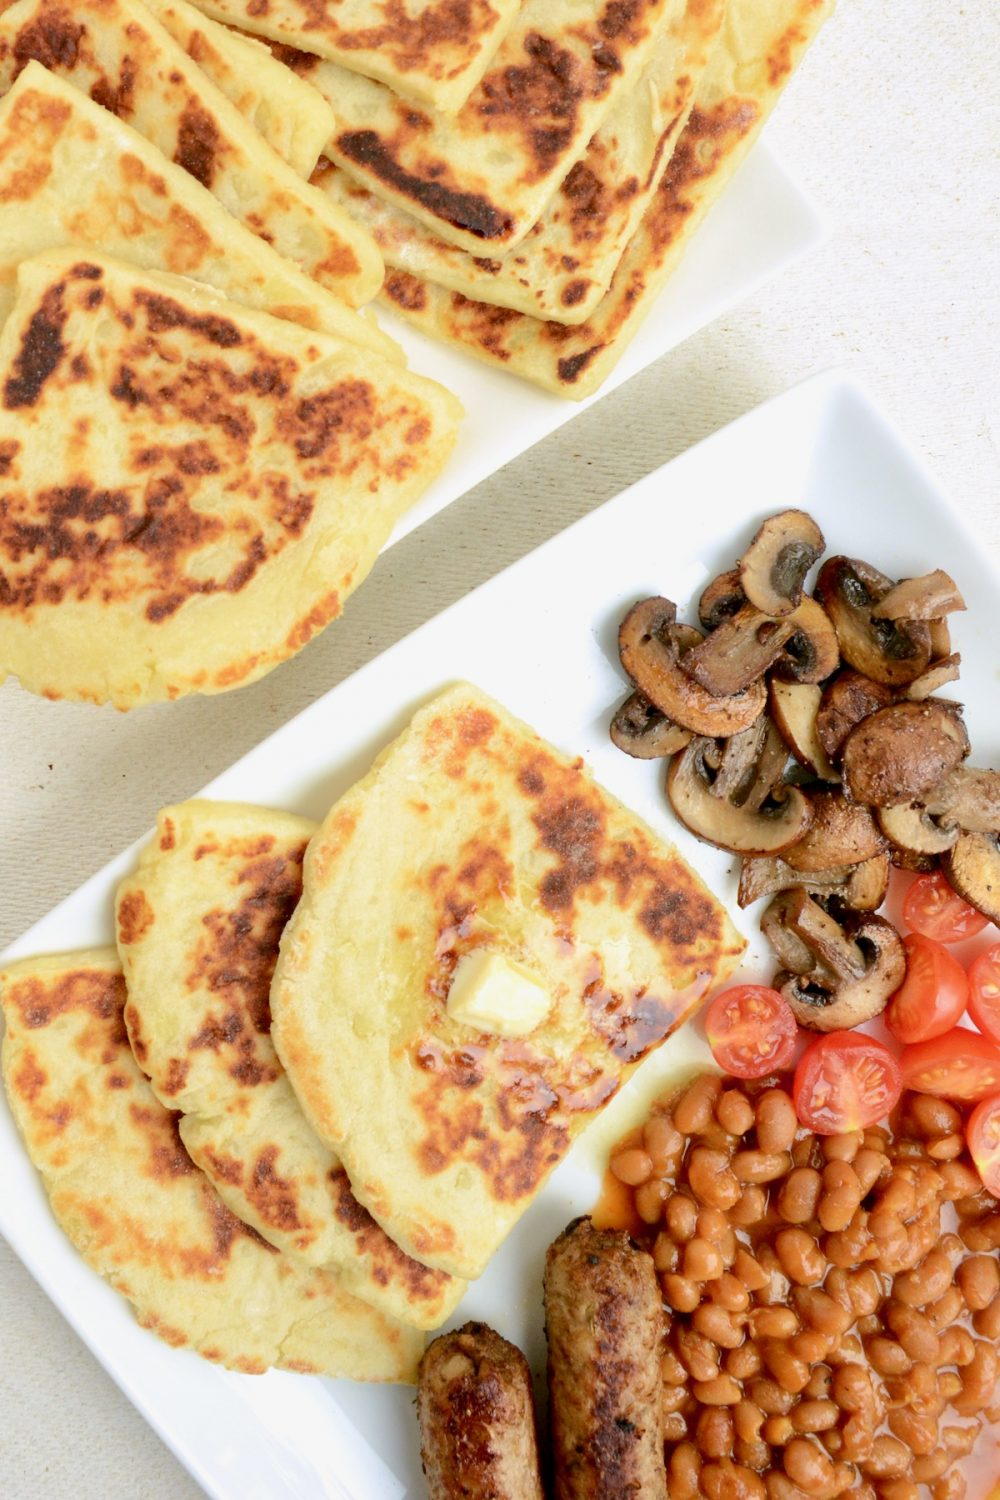 A breakfast plate of potato scones with butter, vegan sausages, baked beans, tomatoes and mushrooms. On its side a plate with more of the browned cooked tatty scones.